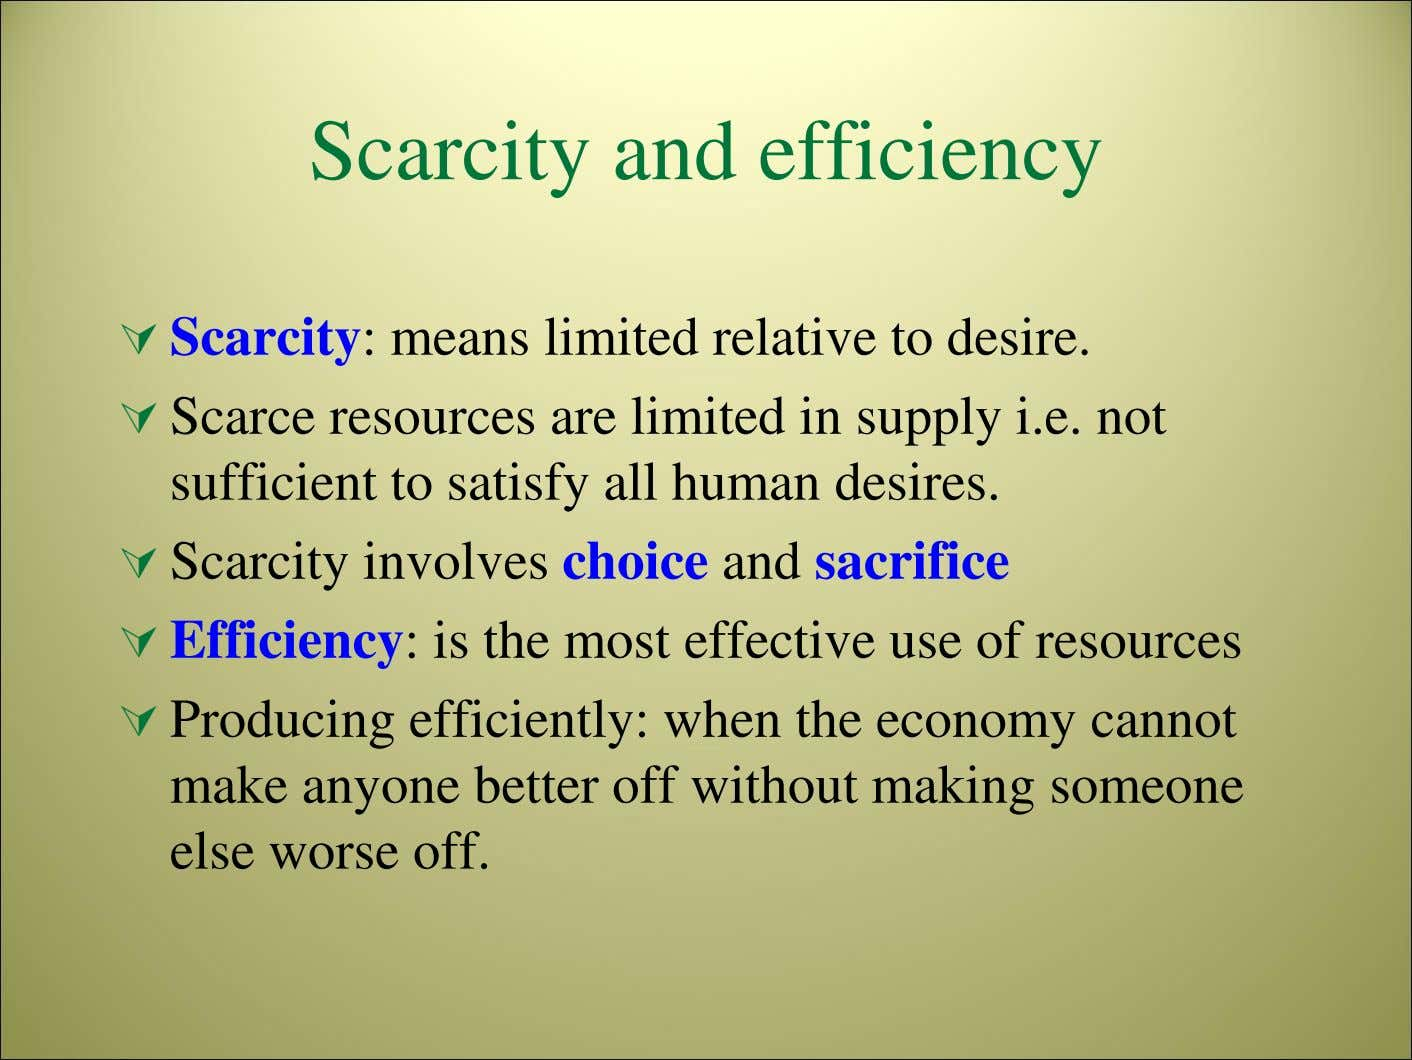 Scarcity and efficiency Scarcity: means limited relative to desire. Scarce resources are limited in supply